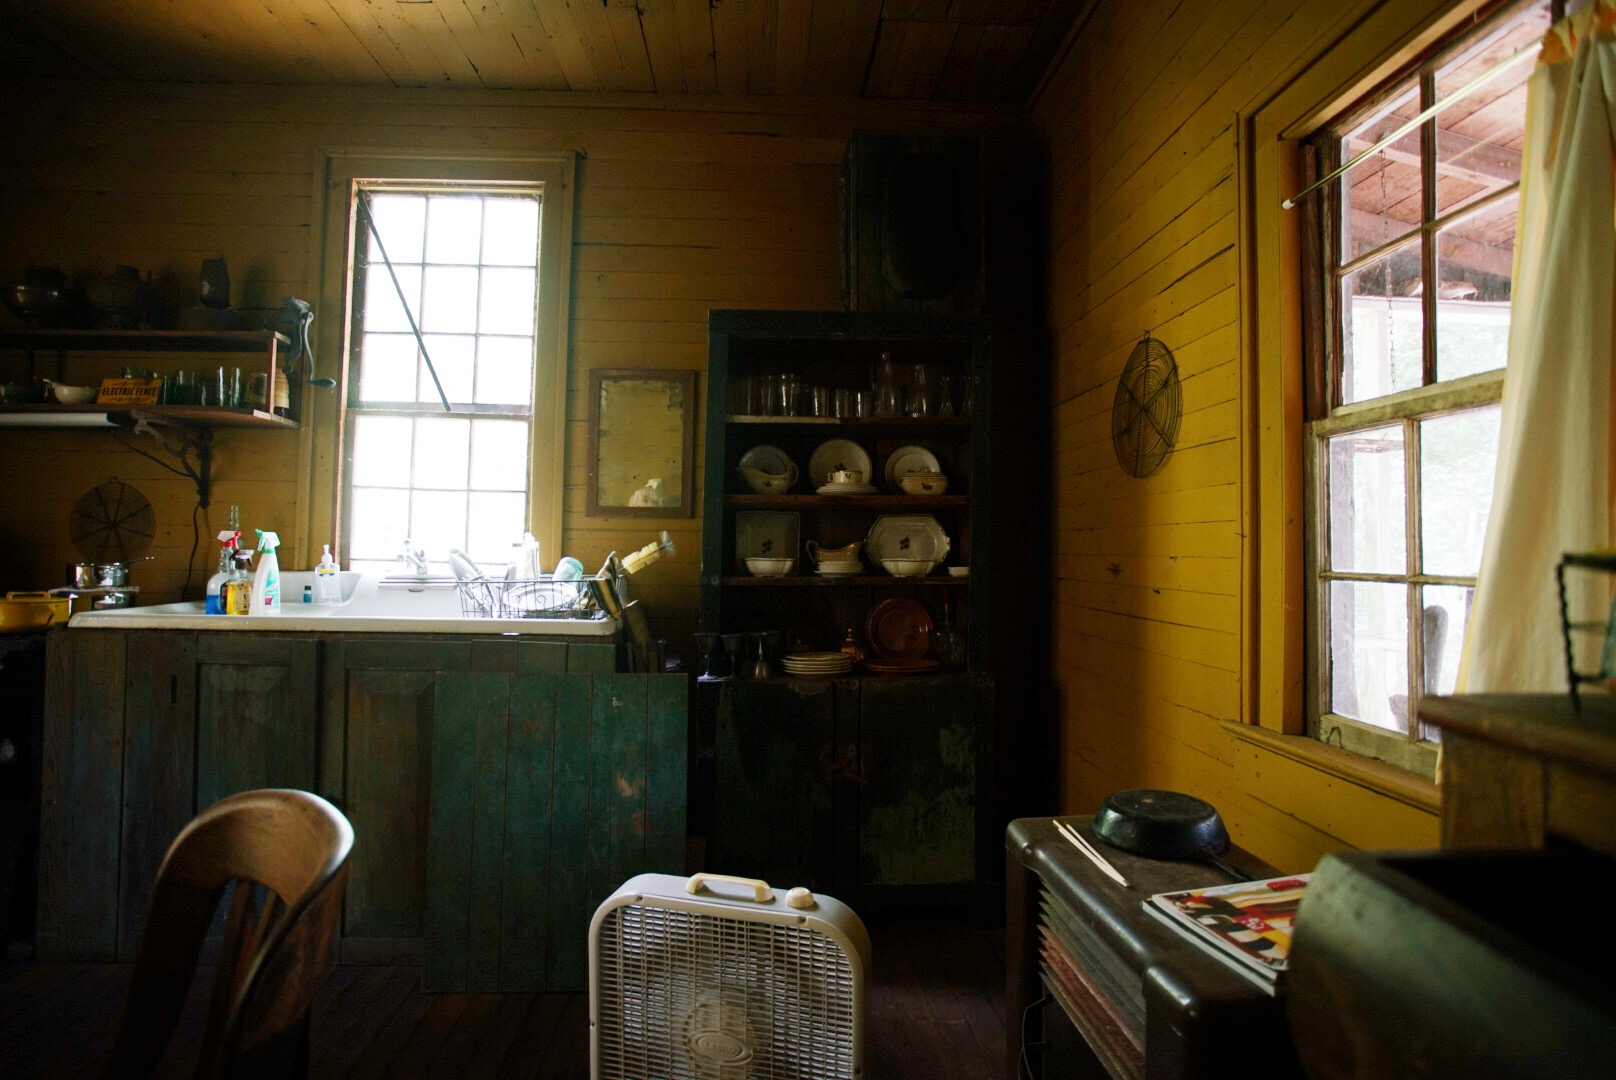 devils pond house-kitchen6.jpeg